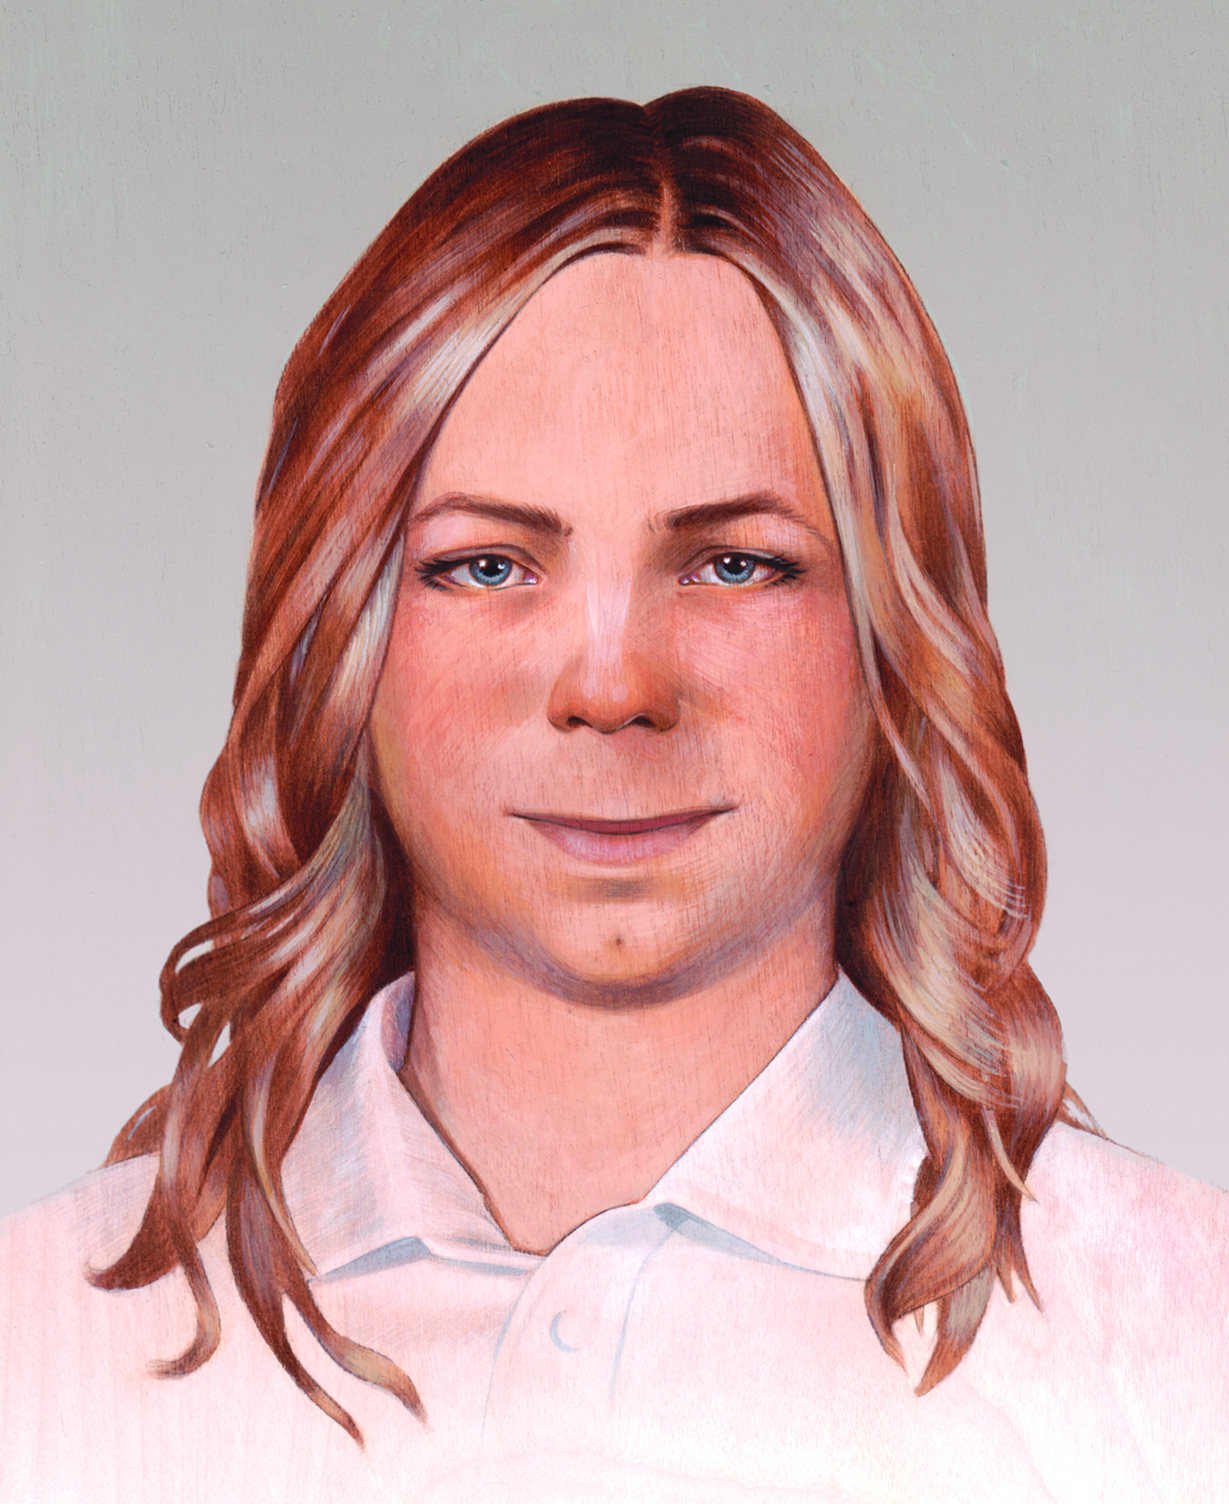 Alicia Neal, Final Painting of Chelsea Manning, 2014. Courtesy of Alicia Neal